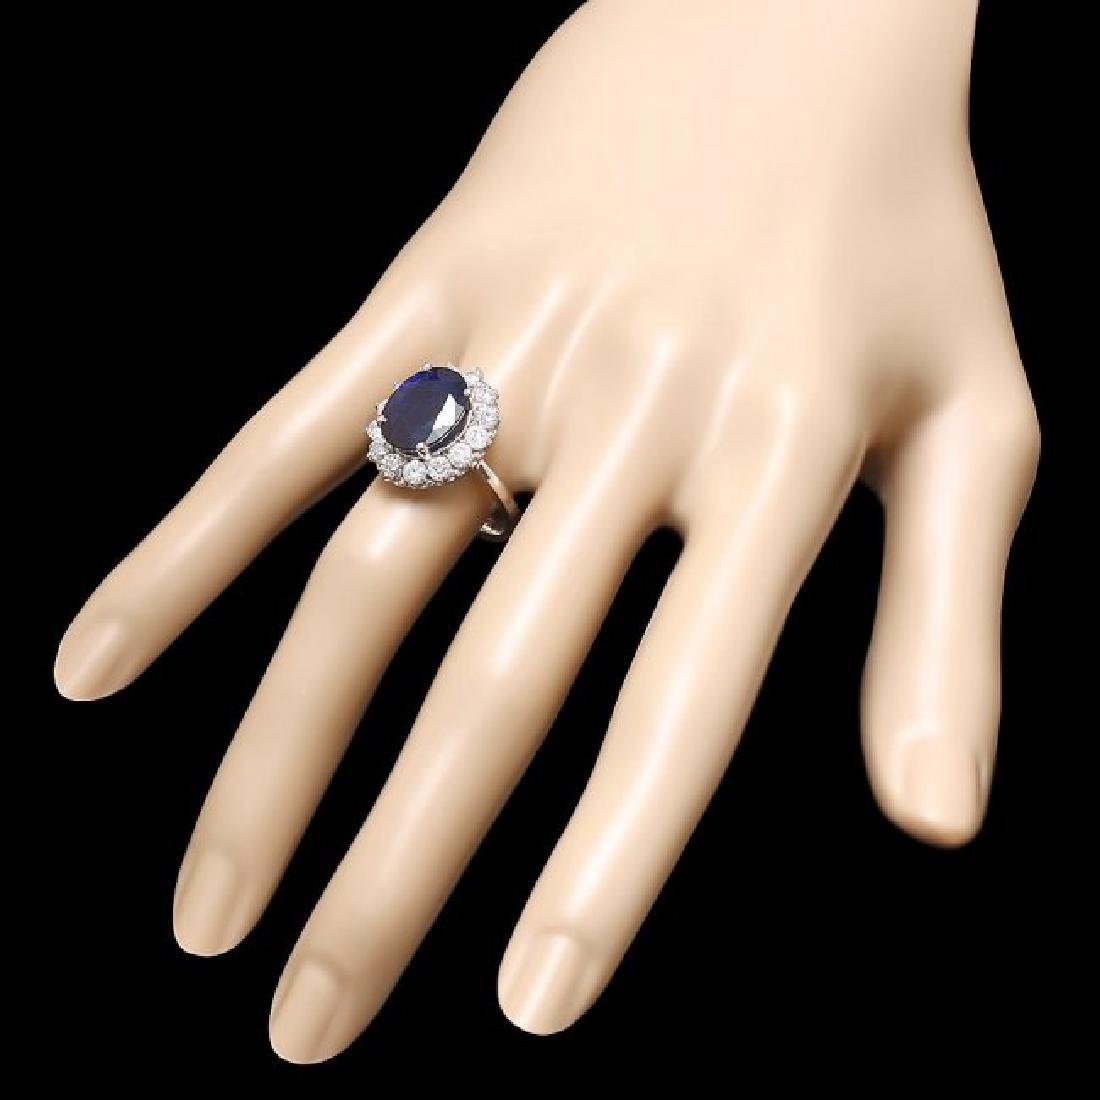 14k Gold 6.00ct Sapphire 1.40ct Diamond Ring - 3